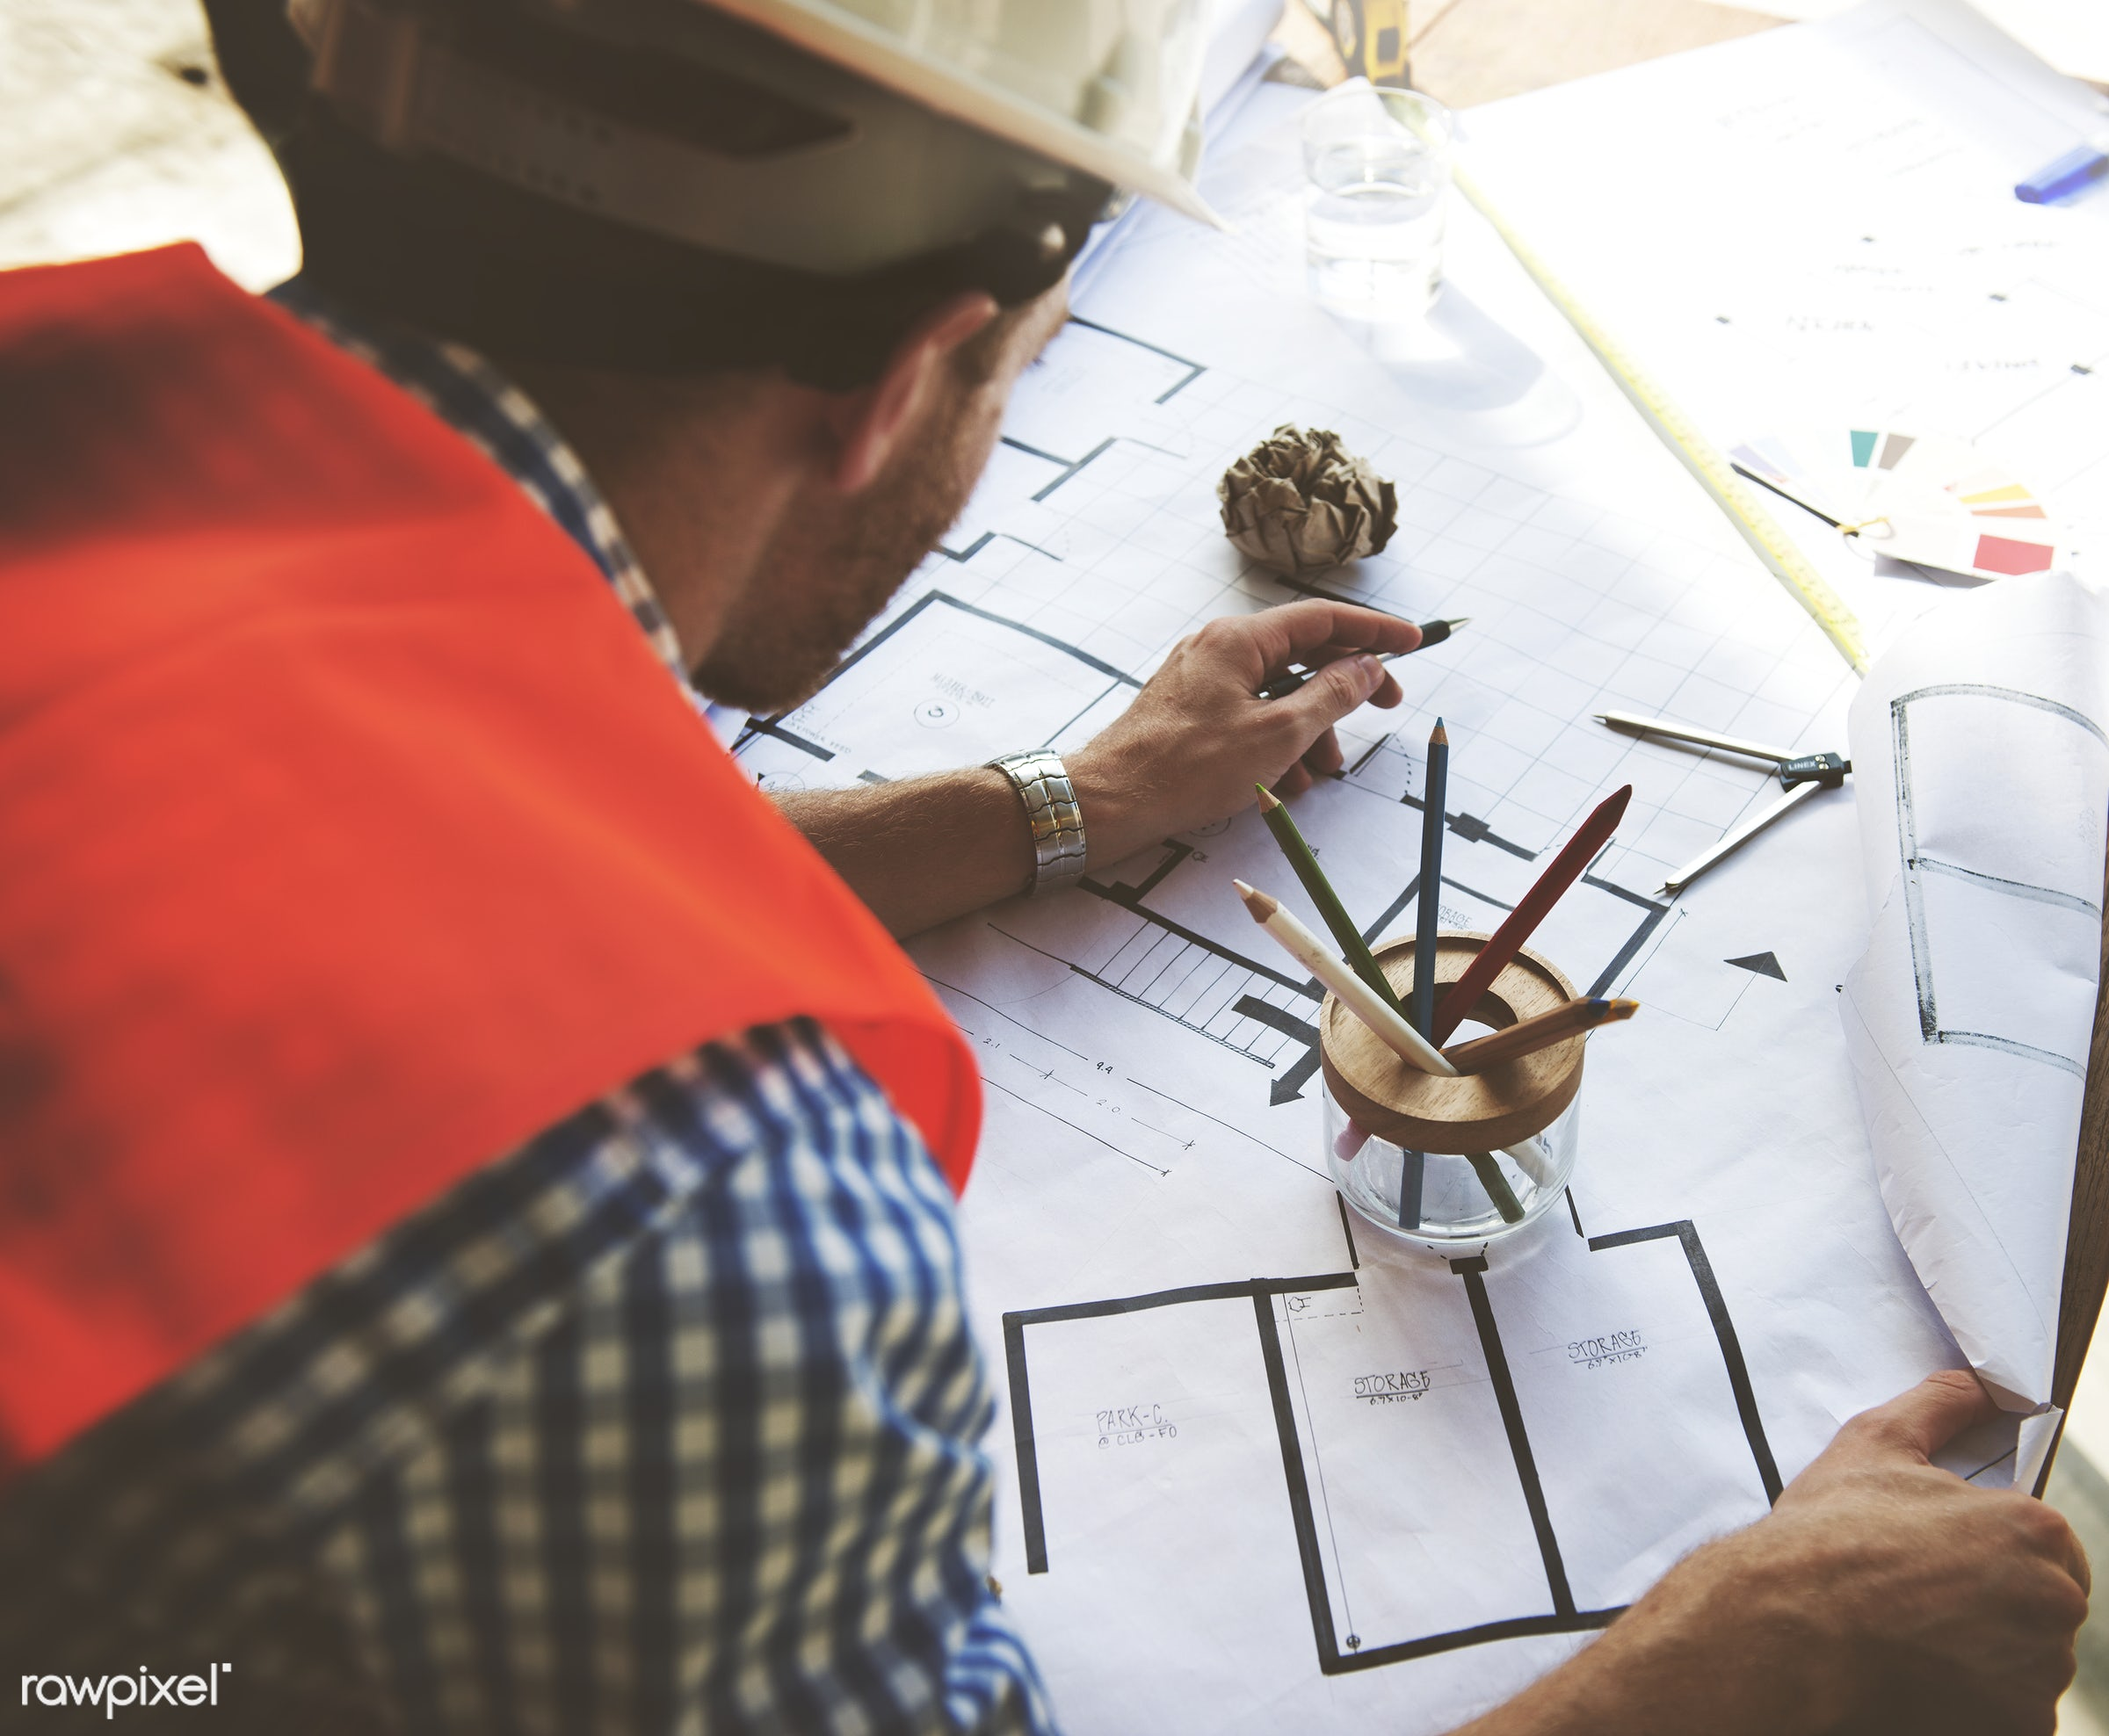 Site construction engineering is working on a building plan - architect, architecture, blue print, board, construction,...